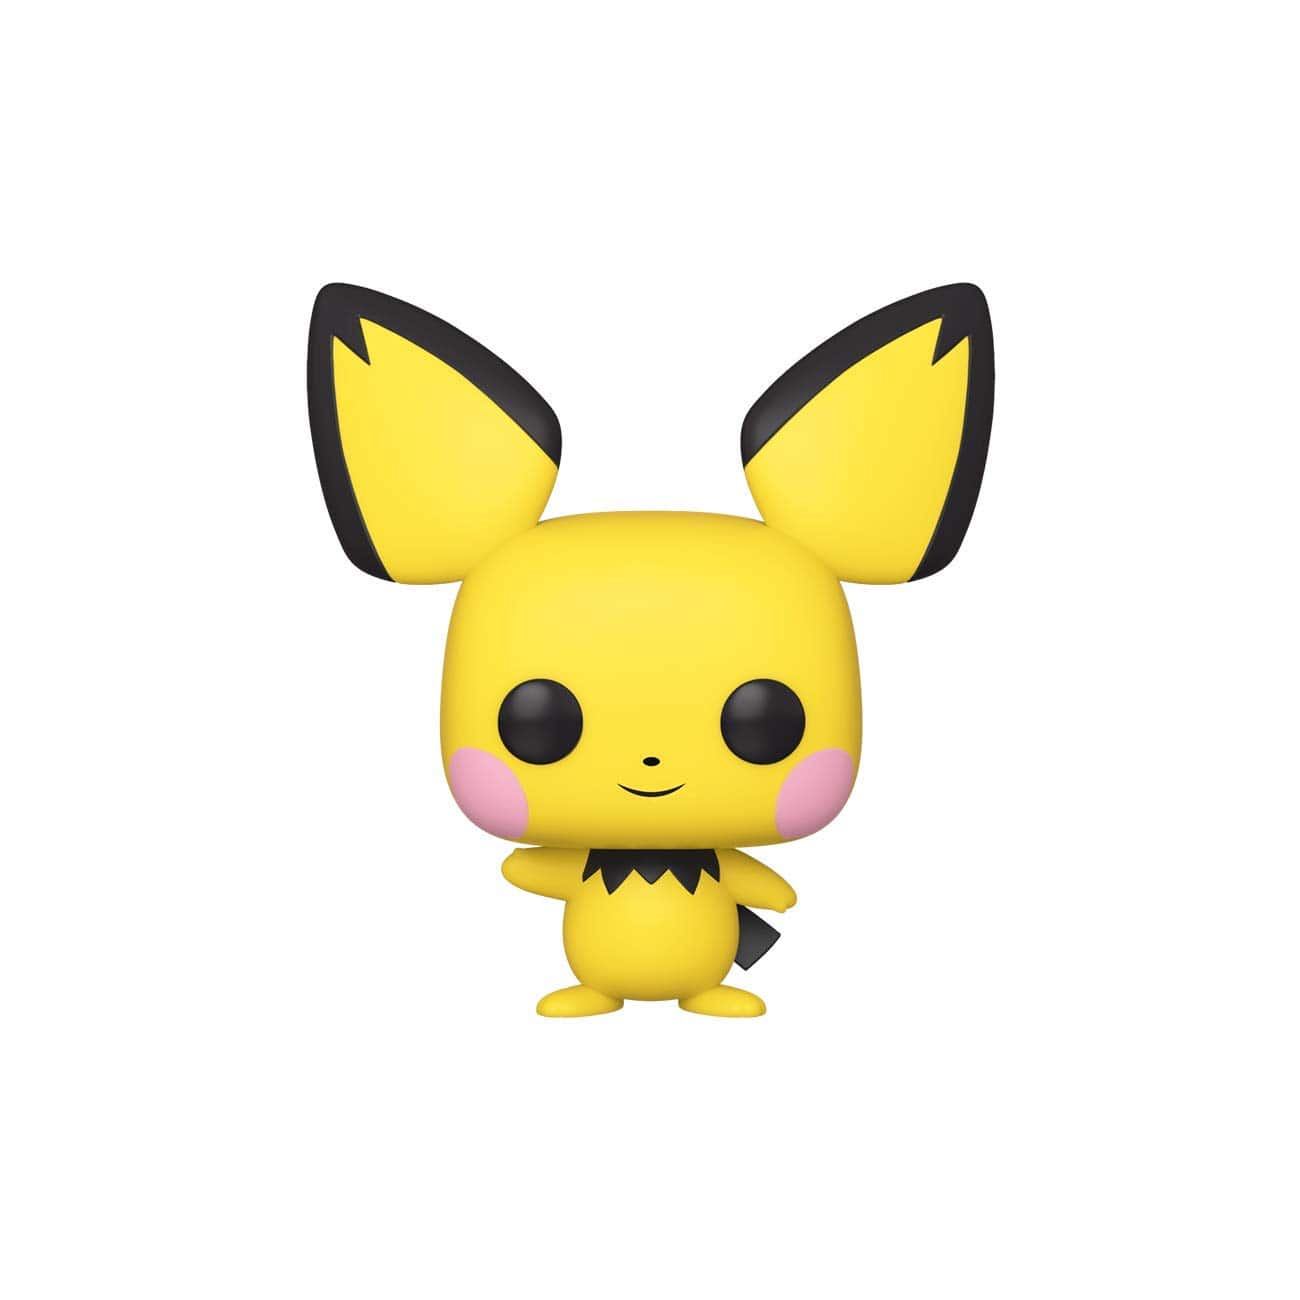 Funko Pop! Games: Pokemon - Pichu, Multicolor,3.75 inches $7.65